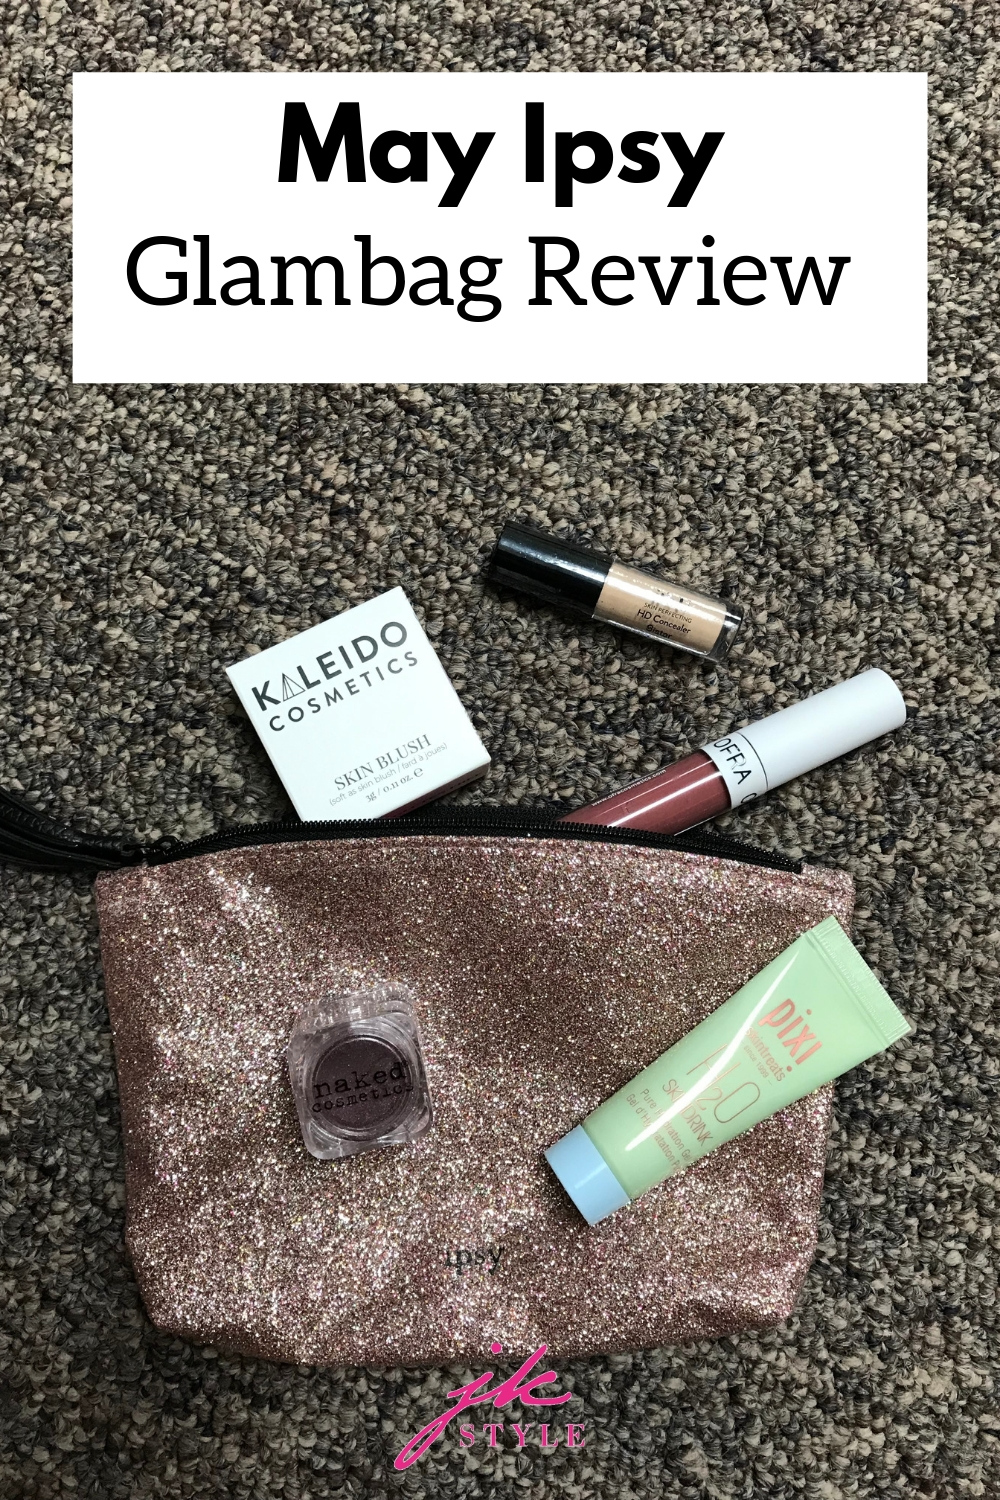 May ipsy glambag review - JK Style